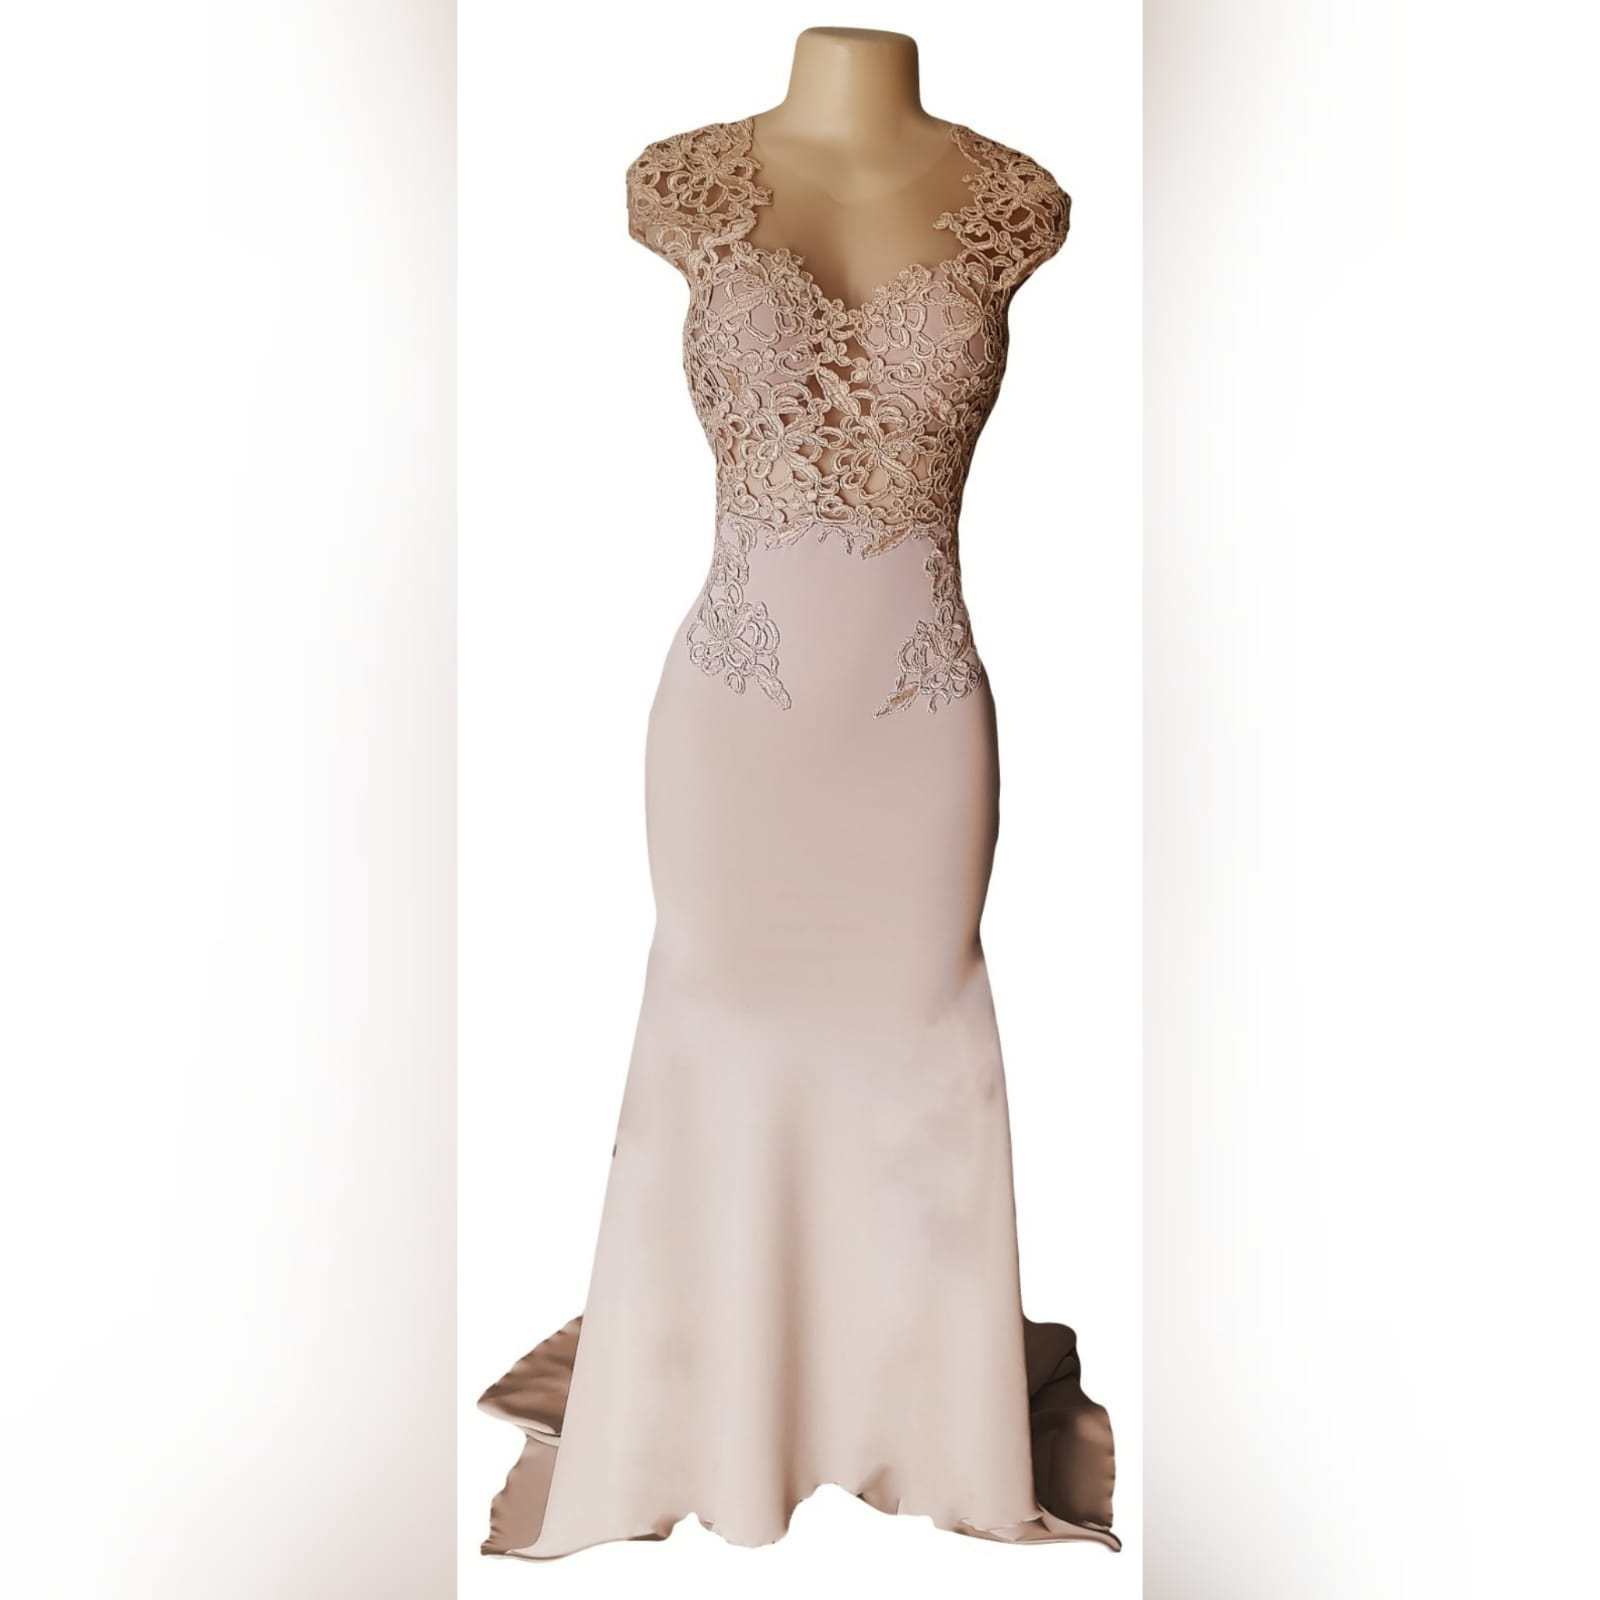 "Nude mermaid prom dress with a translucent lace bodice 11 <blockquote>""never dull your shine for somebody else. "" tyra banks</blockquote> a sophisticated dress design created uniquely for my client for her prom dance. A nude mermaid prom dress with a translucent lace bodice, v open back and a train."